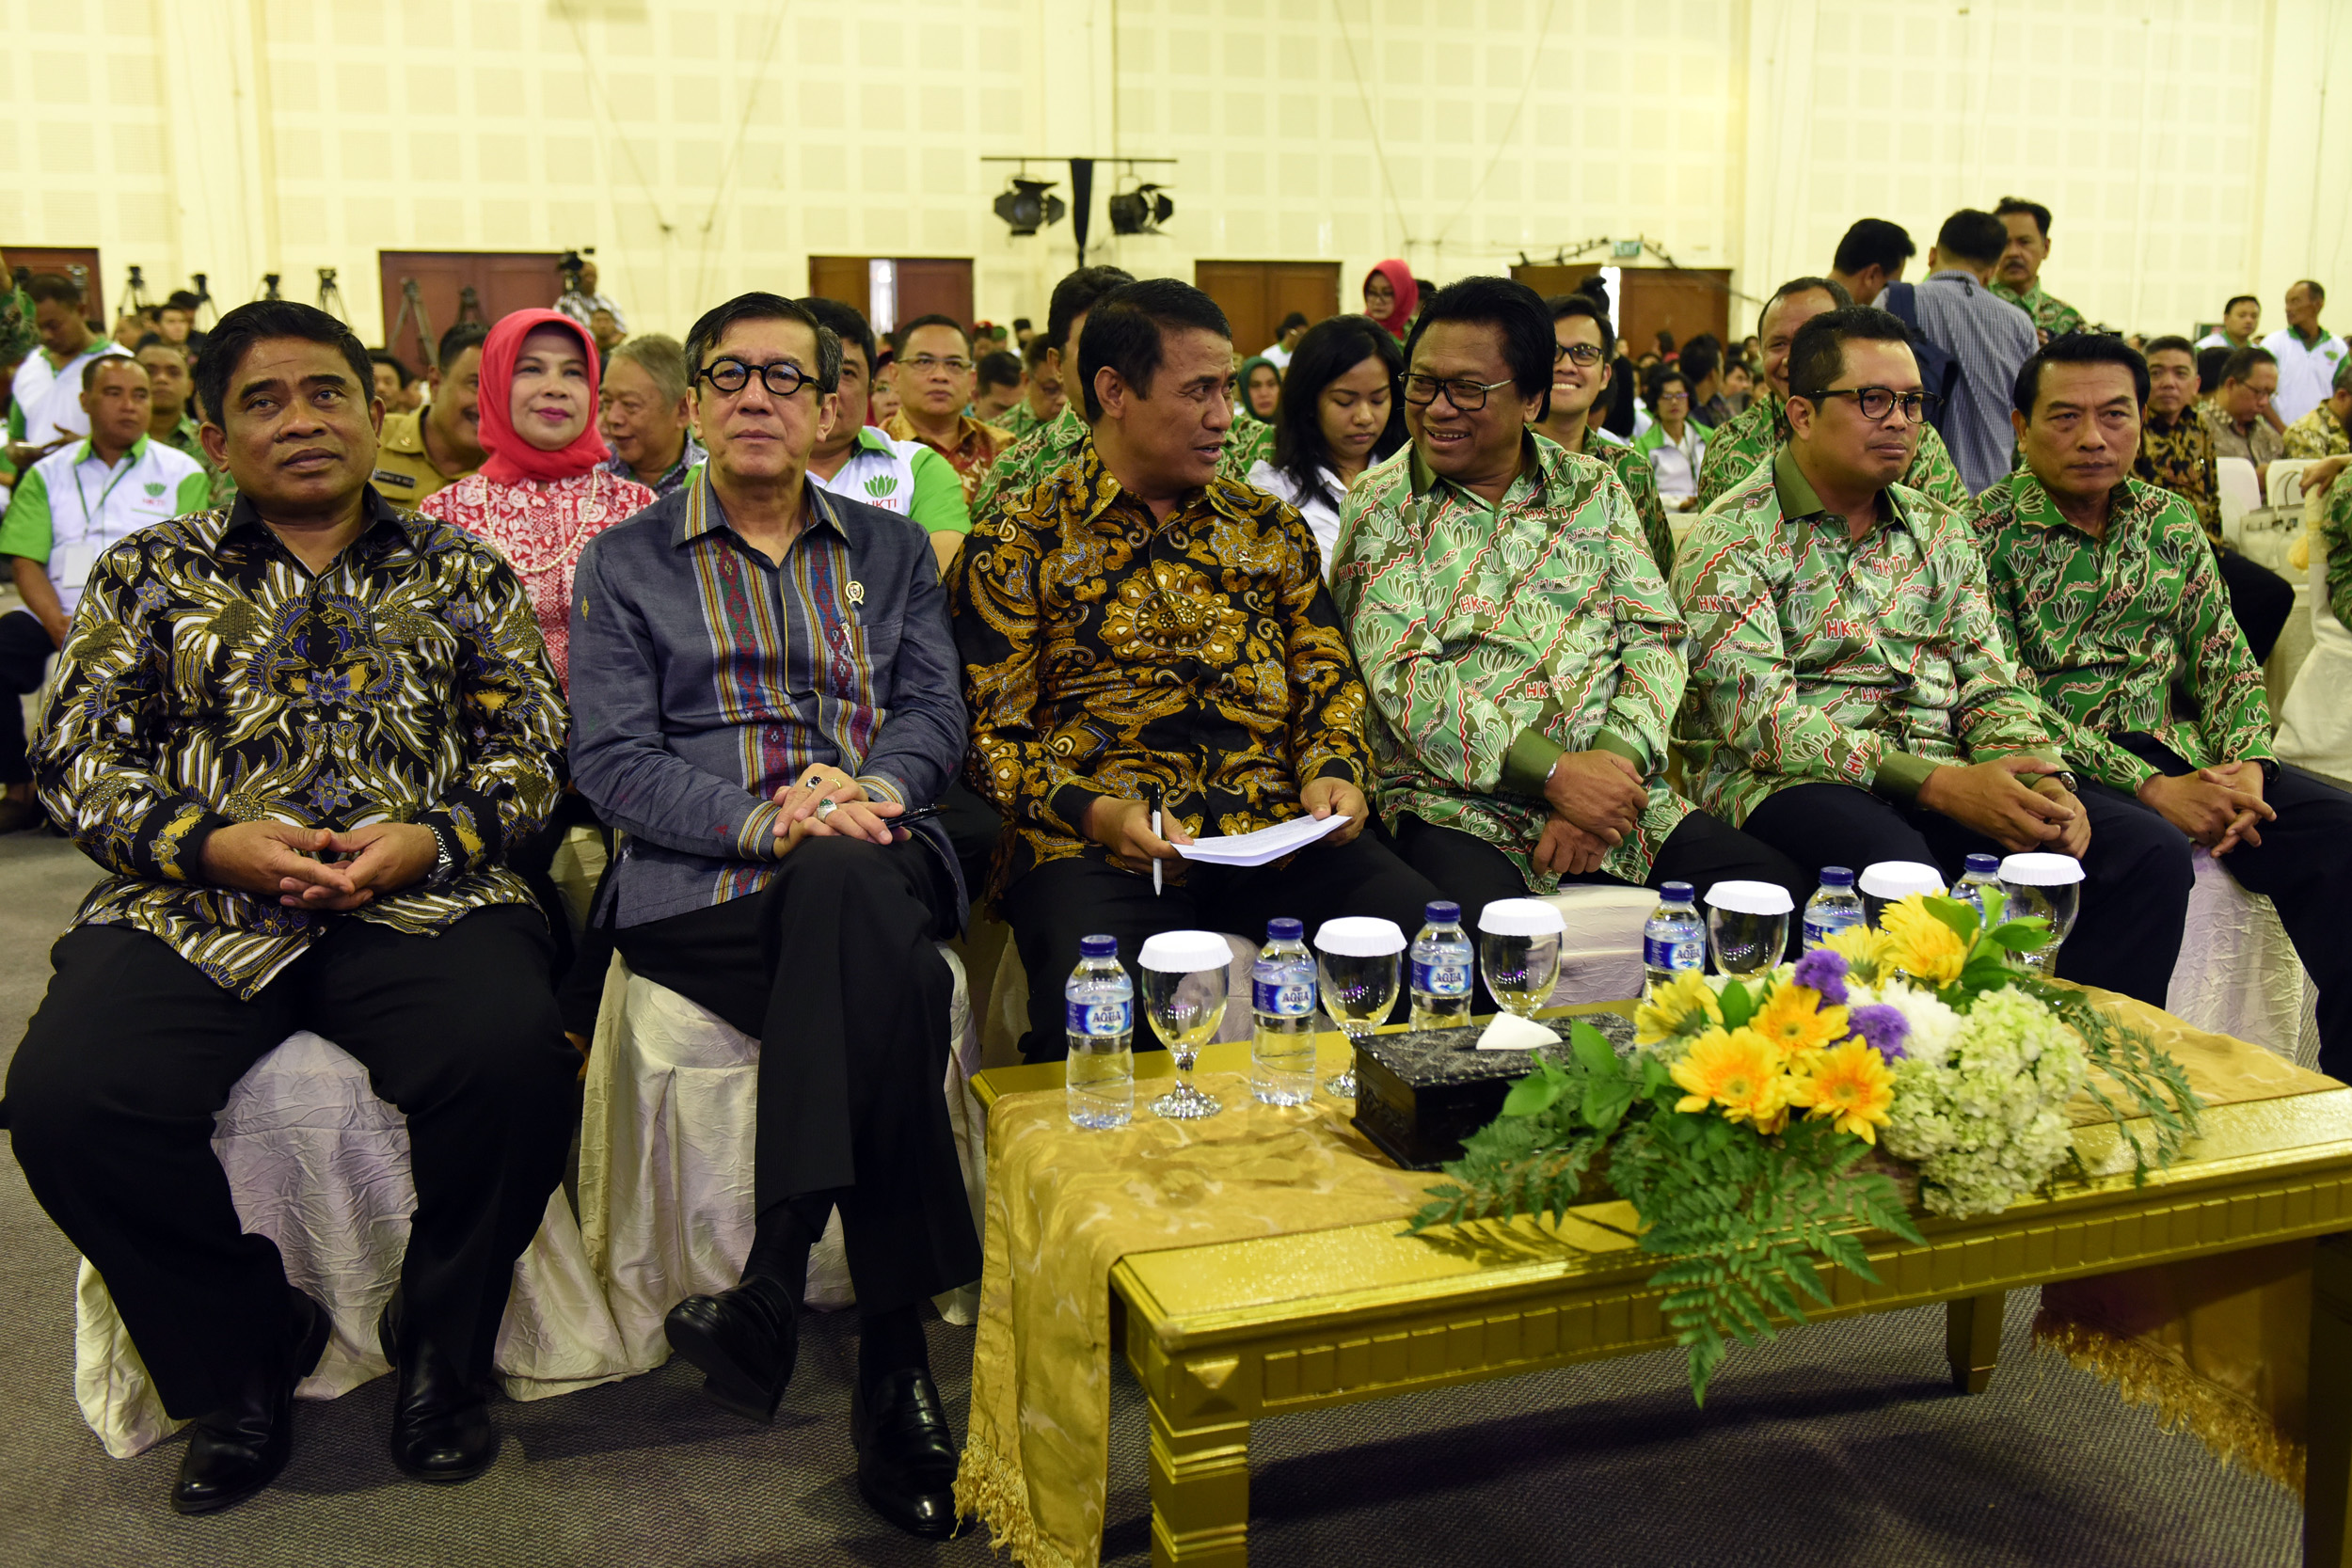 Minister of Agriculture attends a silaturahmi (amicable gathering) with the participants of the 2017 Indonesian Farmers Association (HKTI)'s National Leaders Meeting on Monday (10/4), at Balai Kartini, Jakarta